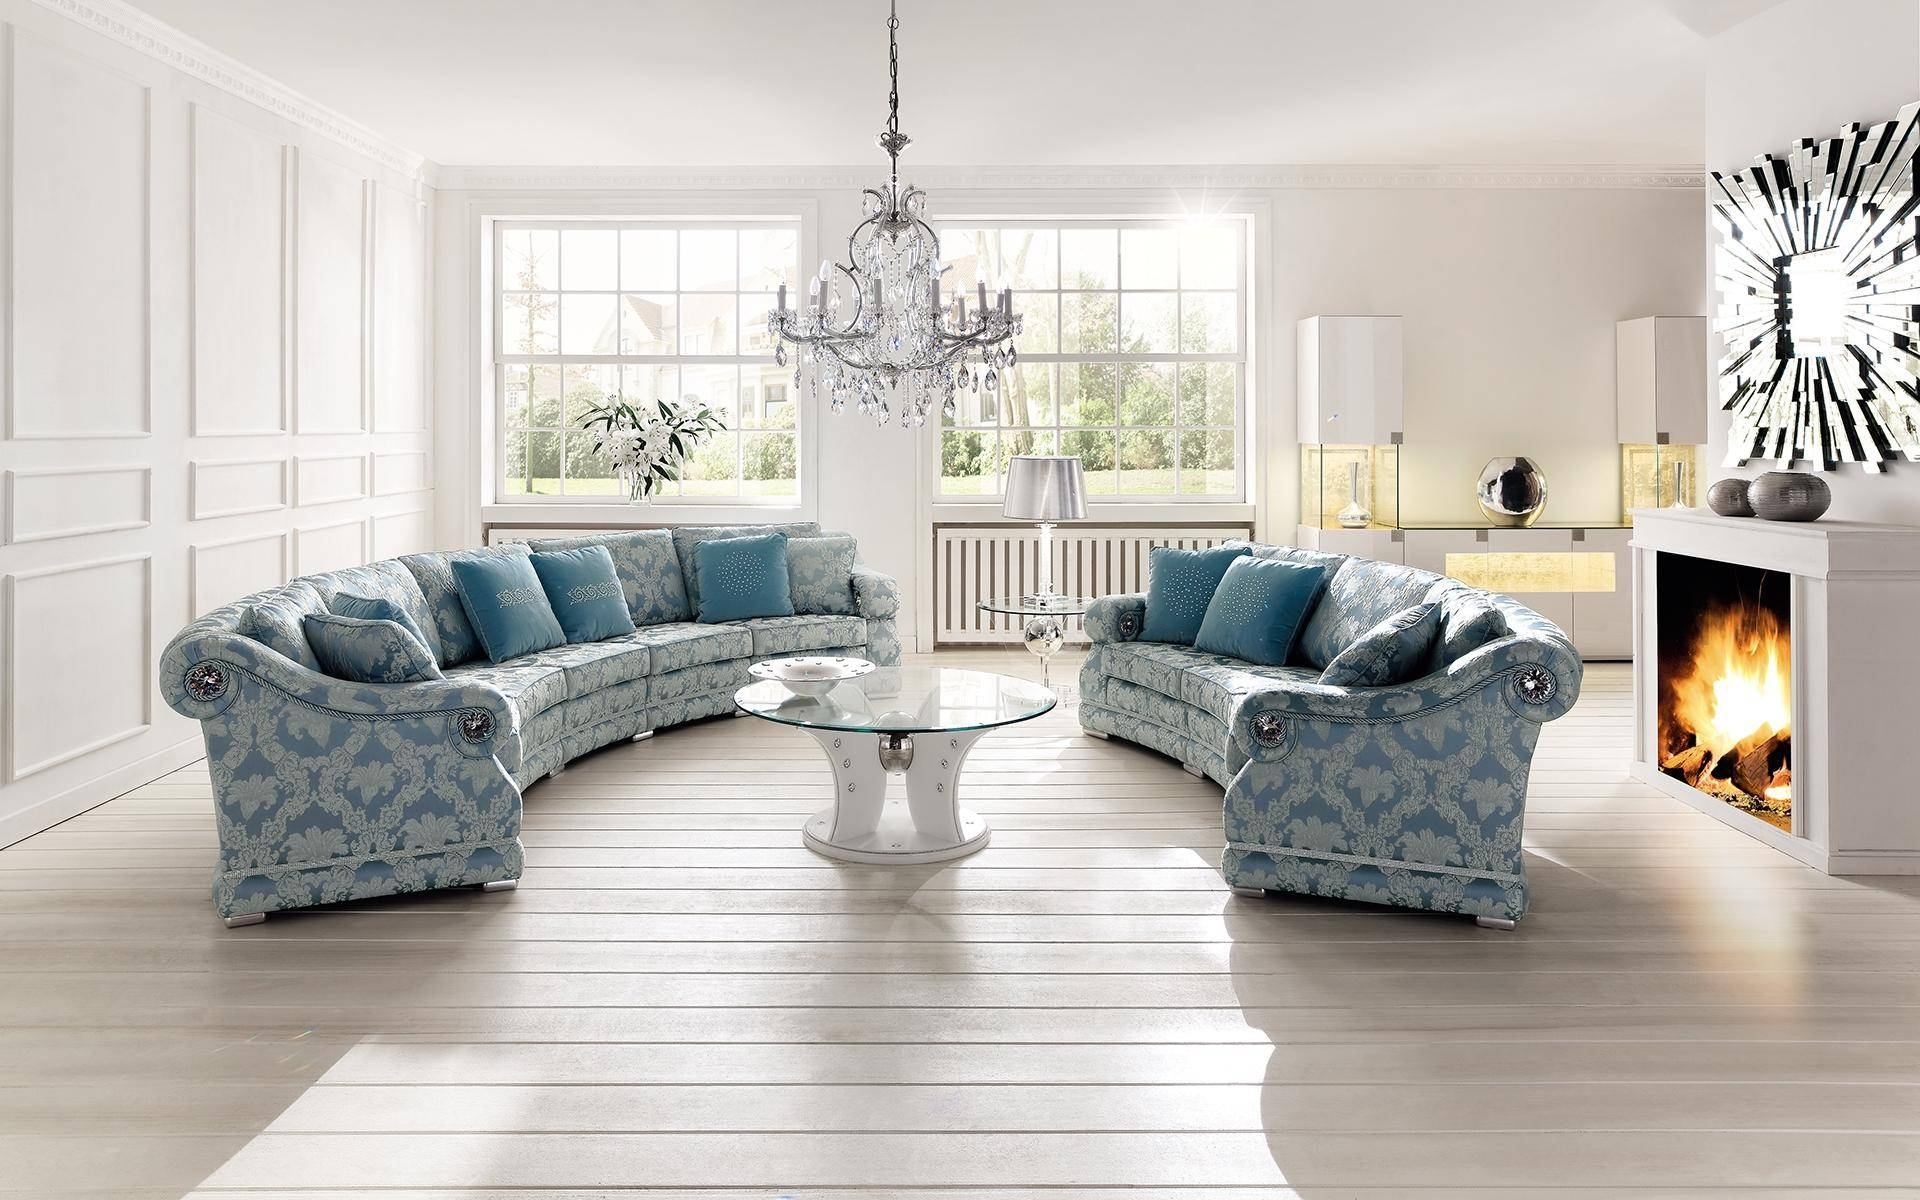 Floral Sofas Uk | Sofas Decoration with regard to Floral Sofas and Chairs (Image 9 of 15)